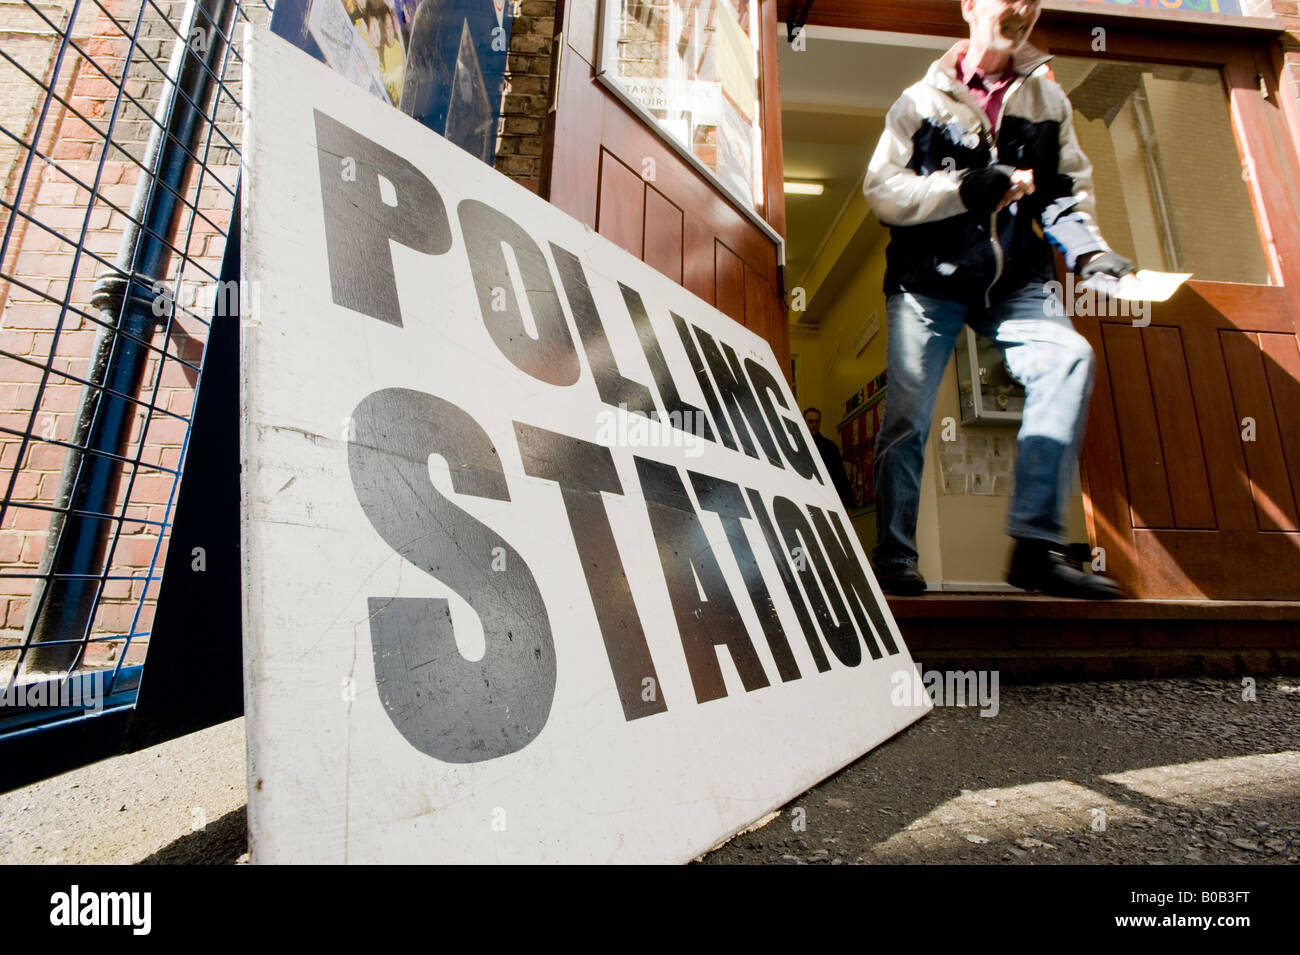 Polling station in the London borough of Lambeth for local elections. - Stock Image